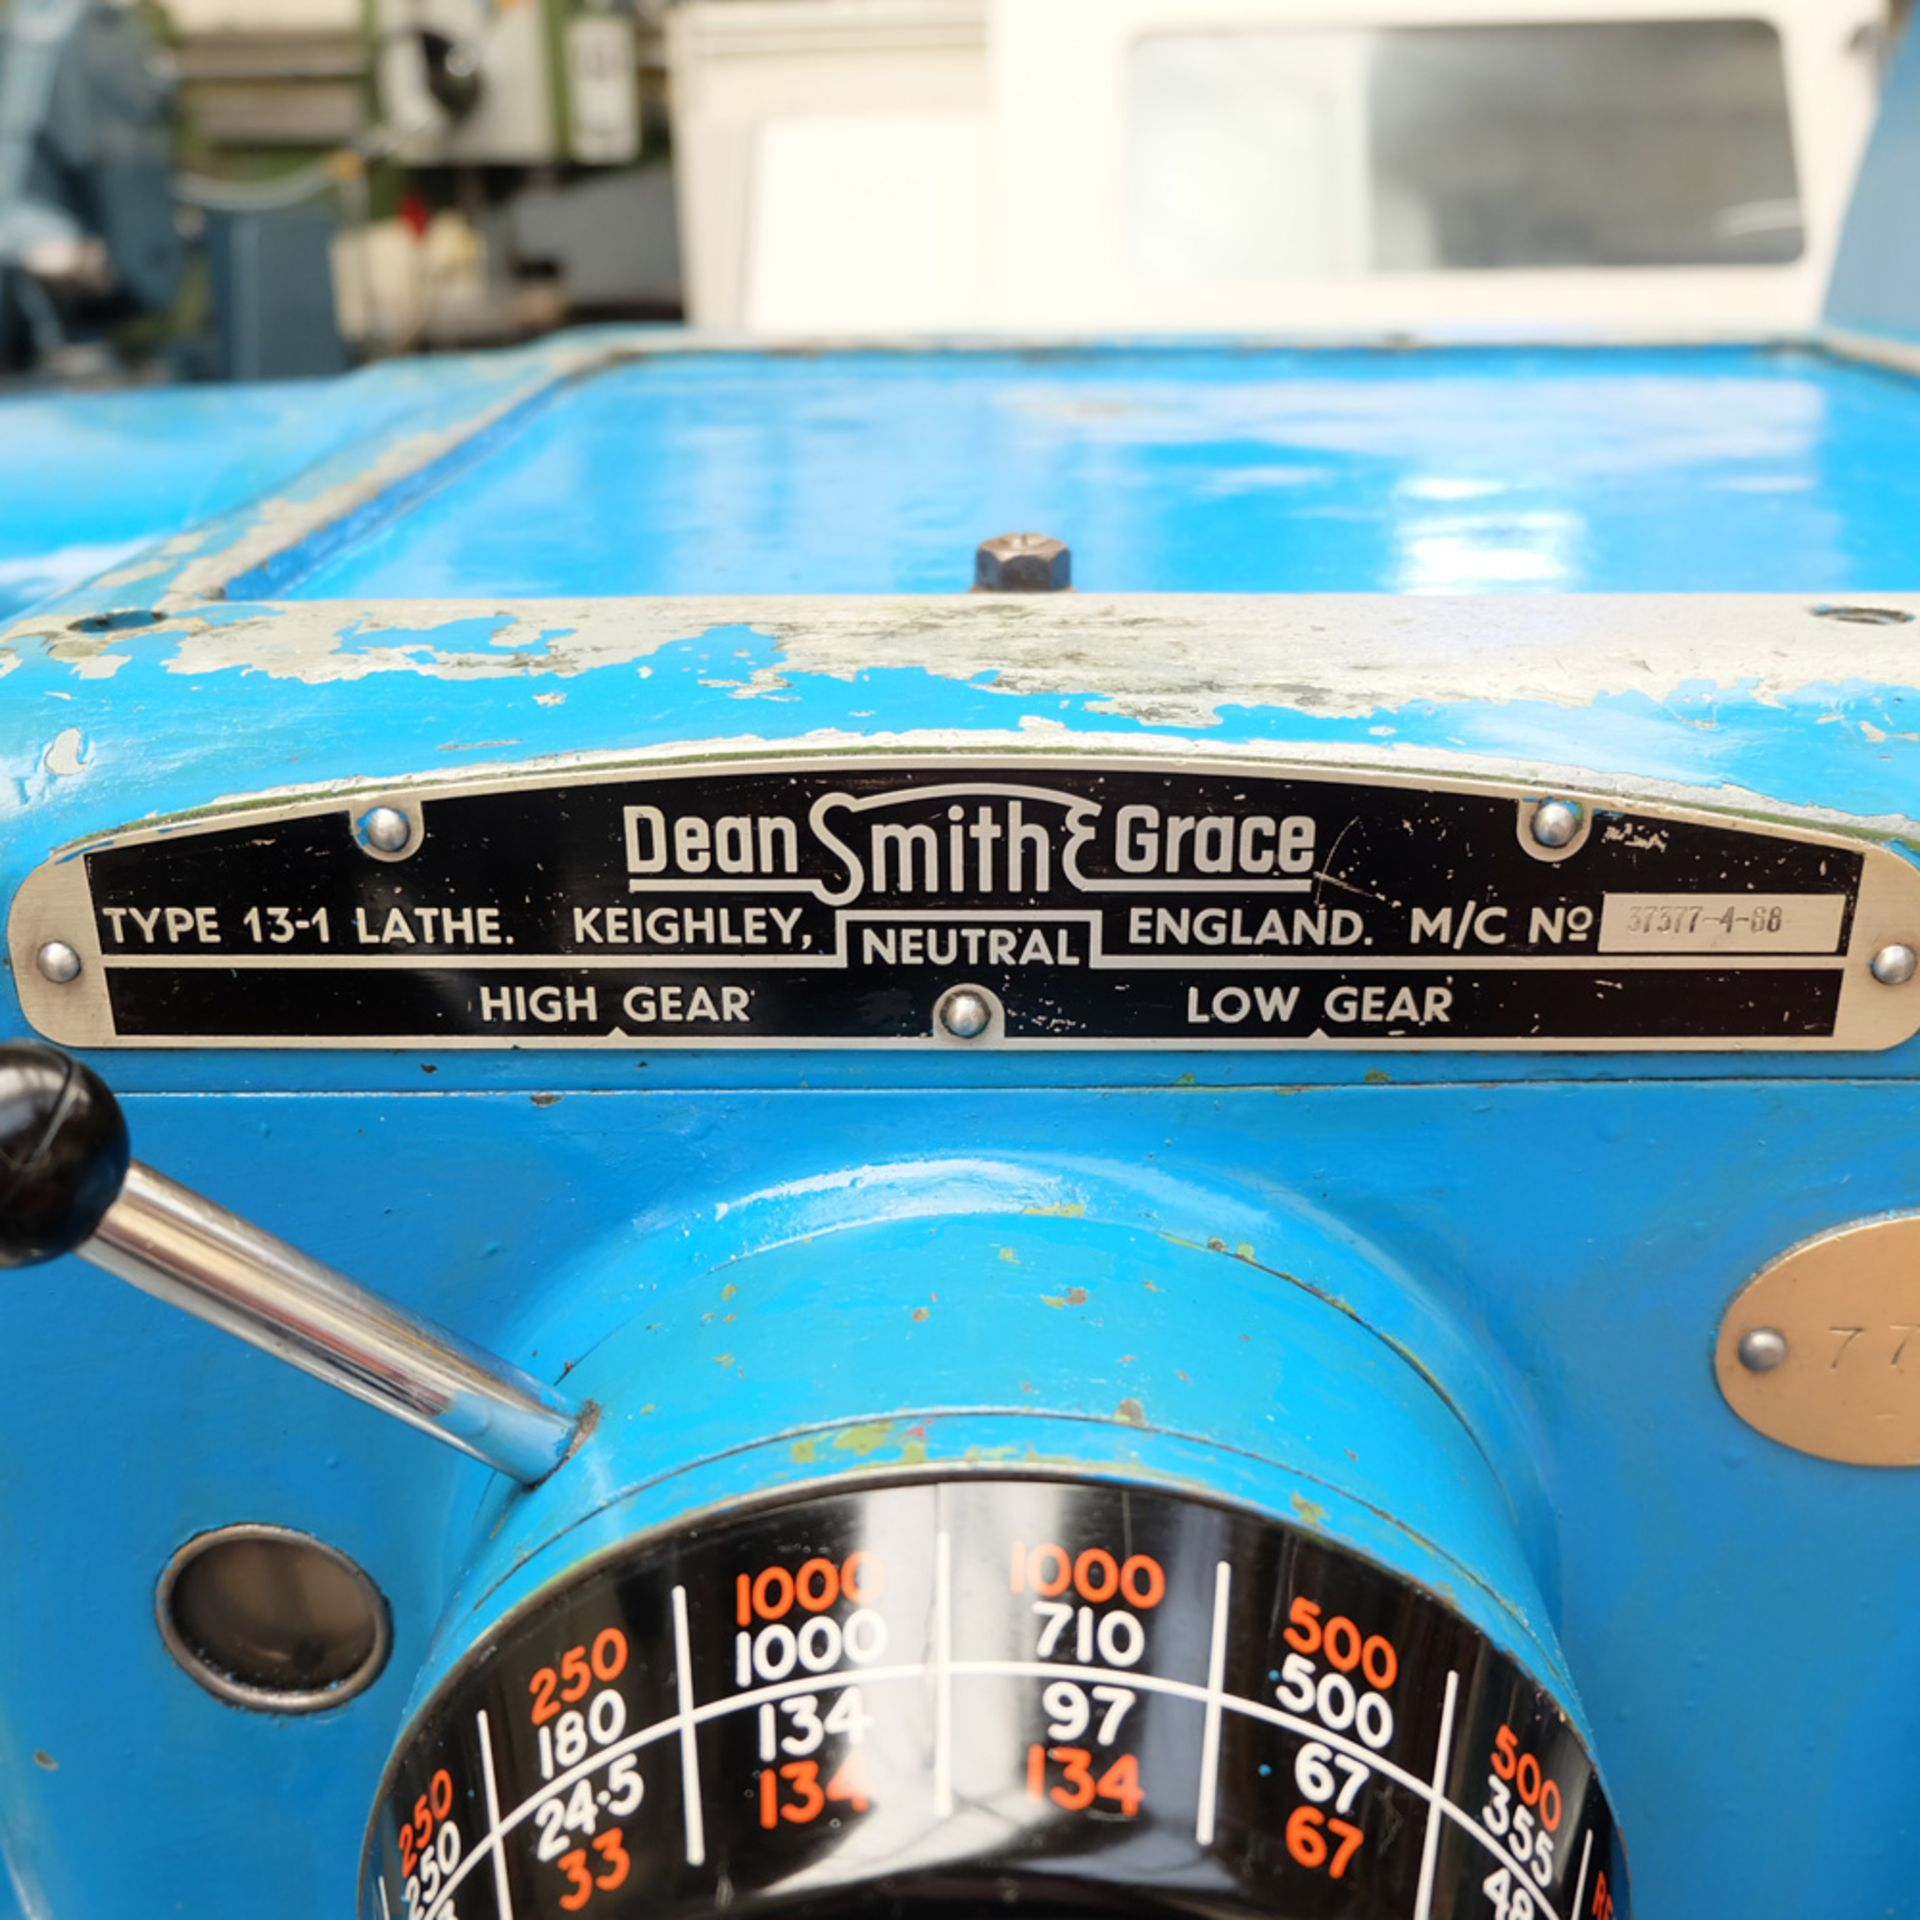 Dean Smith & Grace Type 13-1 Tool Room Centre Lathe. - Image 4 of 13